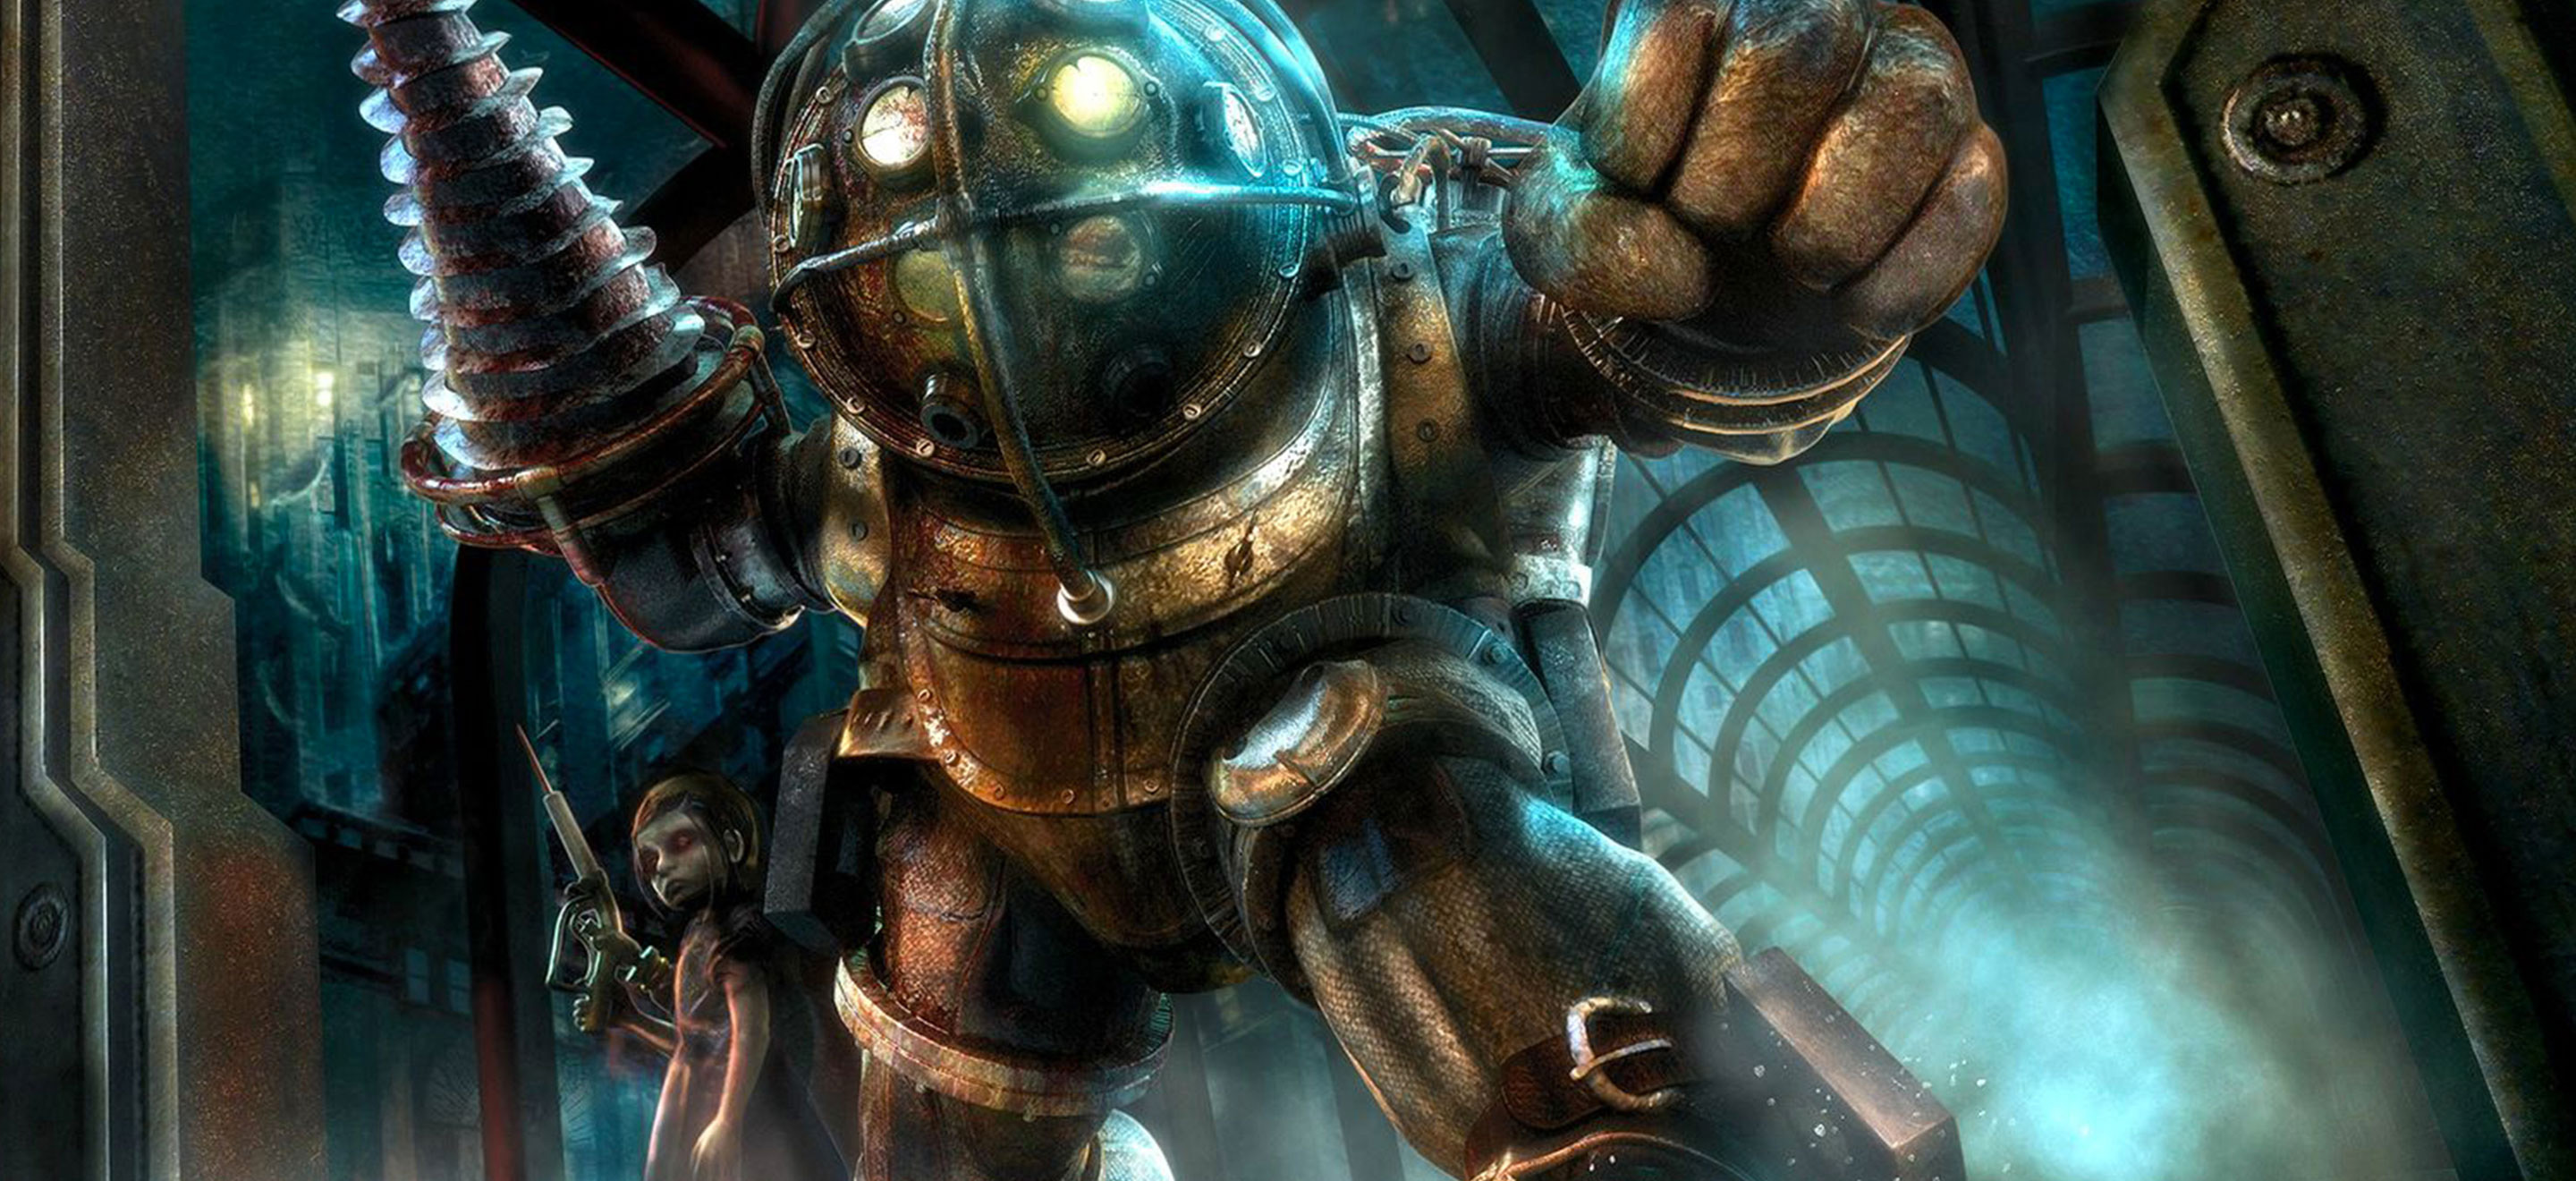 https://www.micromania.fr/on/demandware.static/-/Sites-Micromania-Library/default/dw40dc5a23/fanzone/dossier/bioshock/bioshock-bigdaddy.jpg